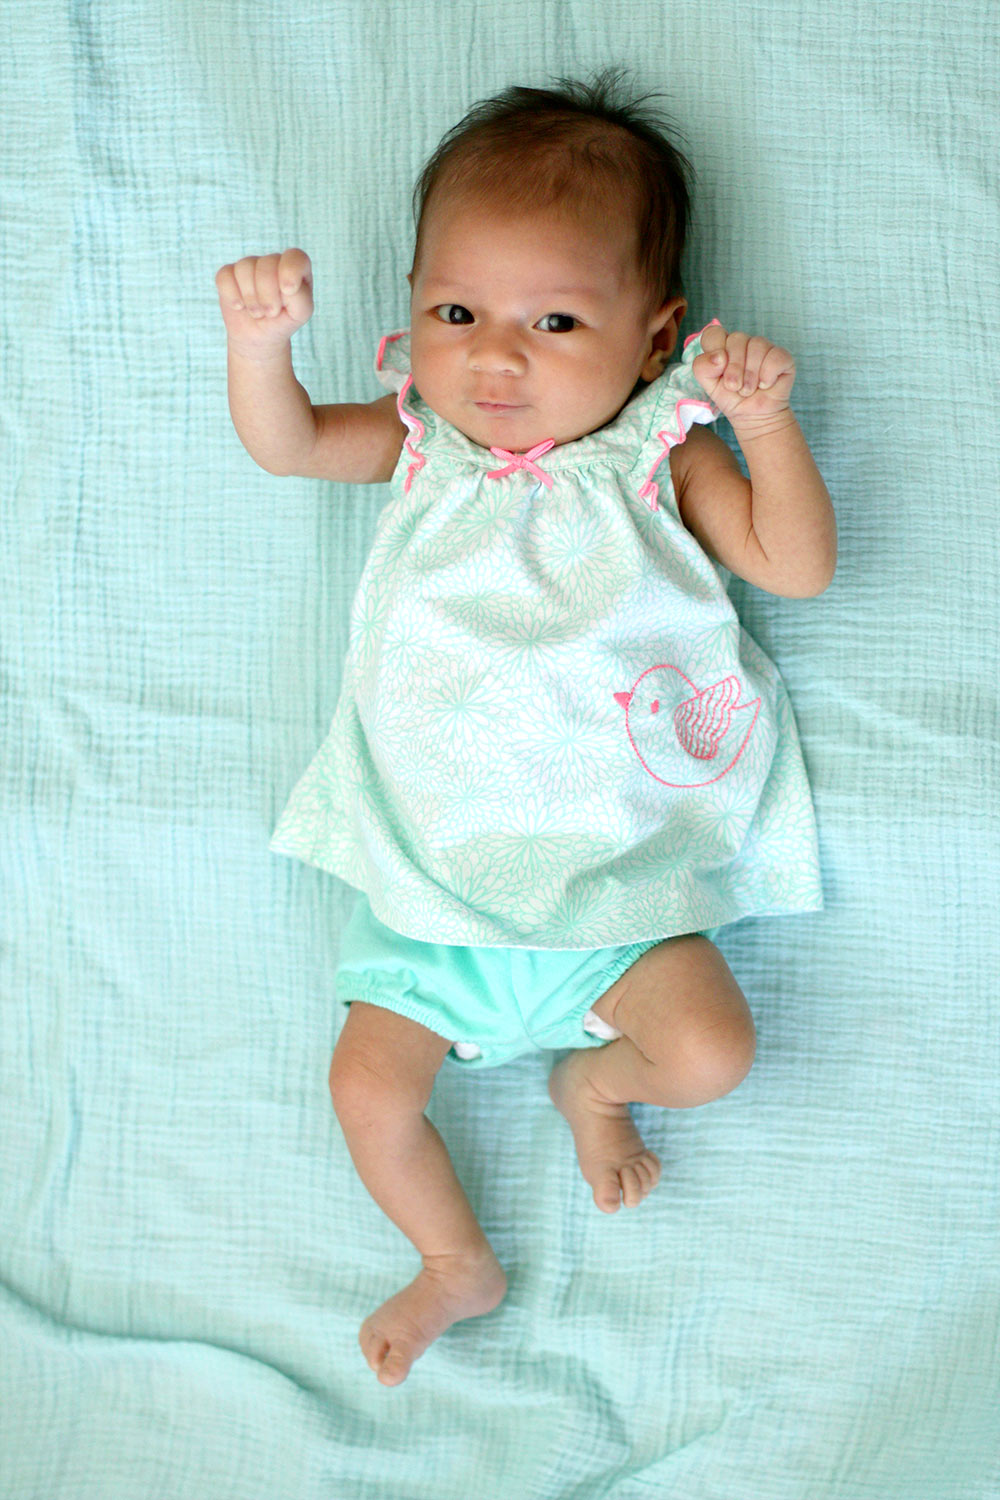 connor claire one month